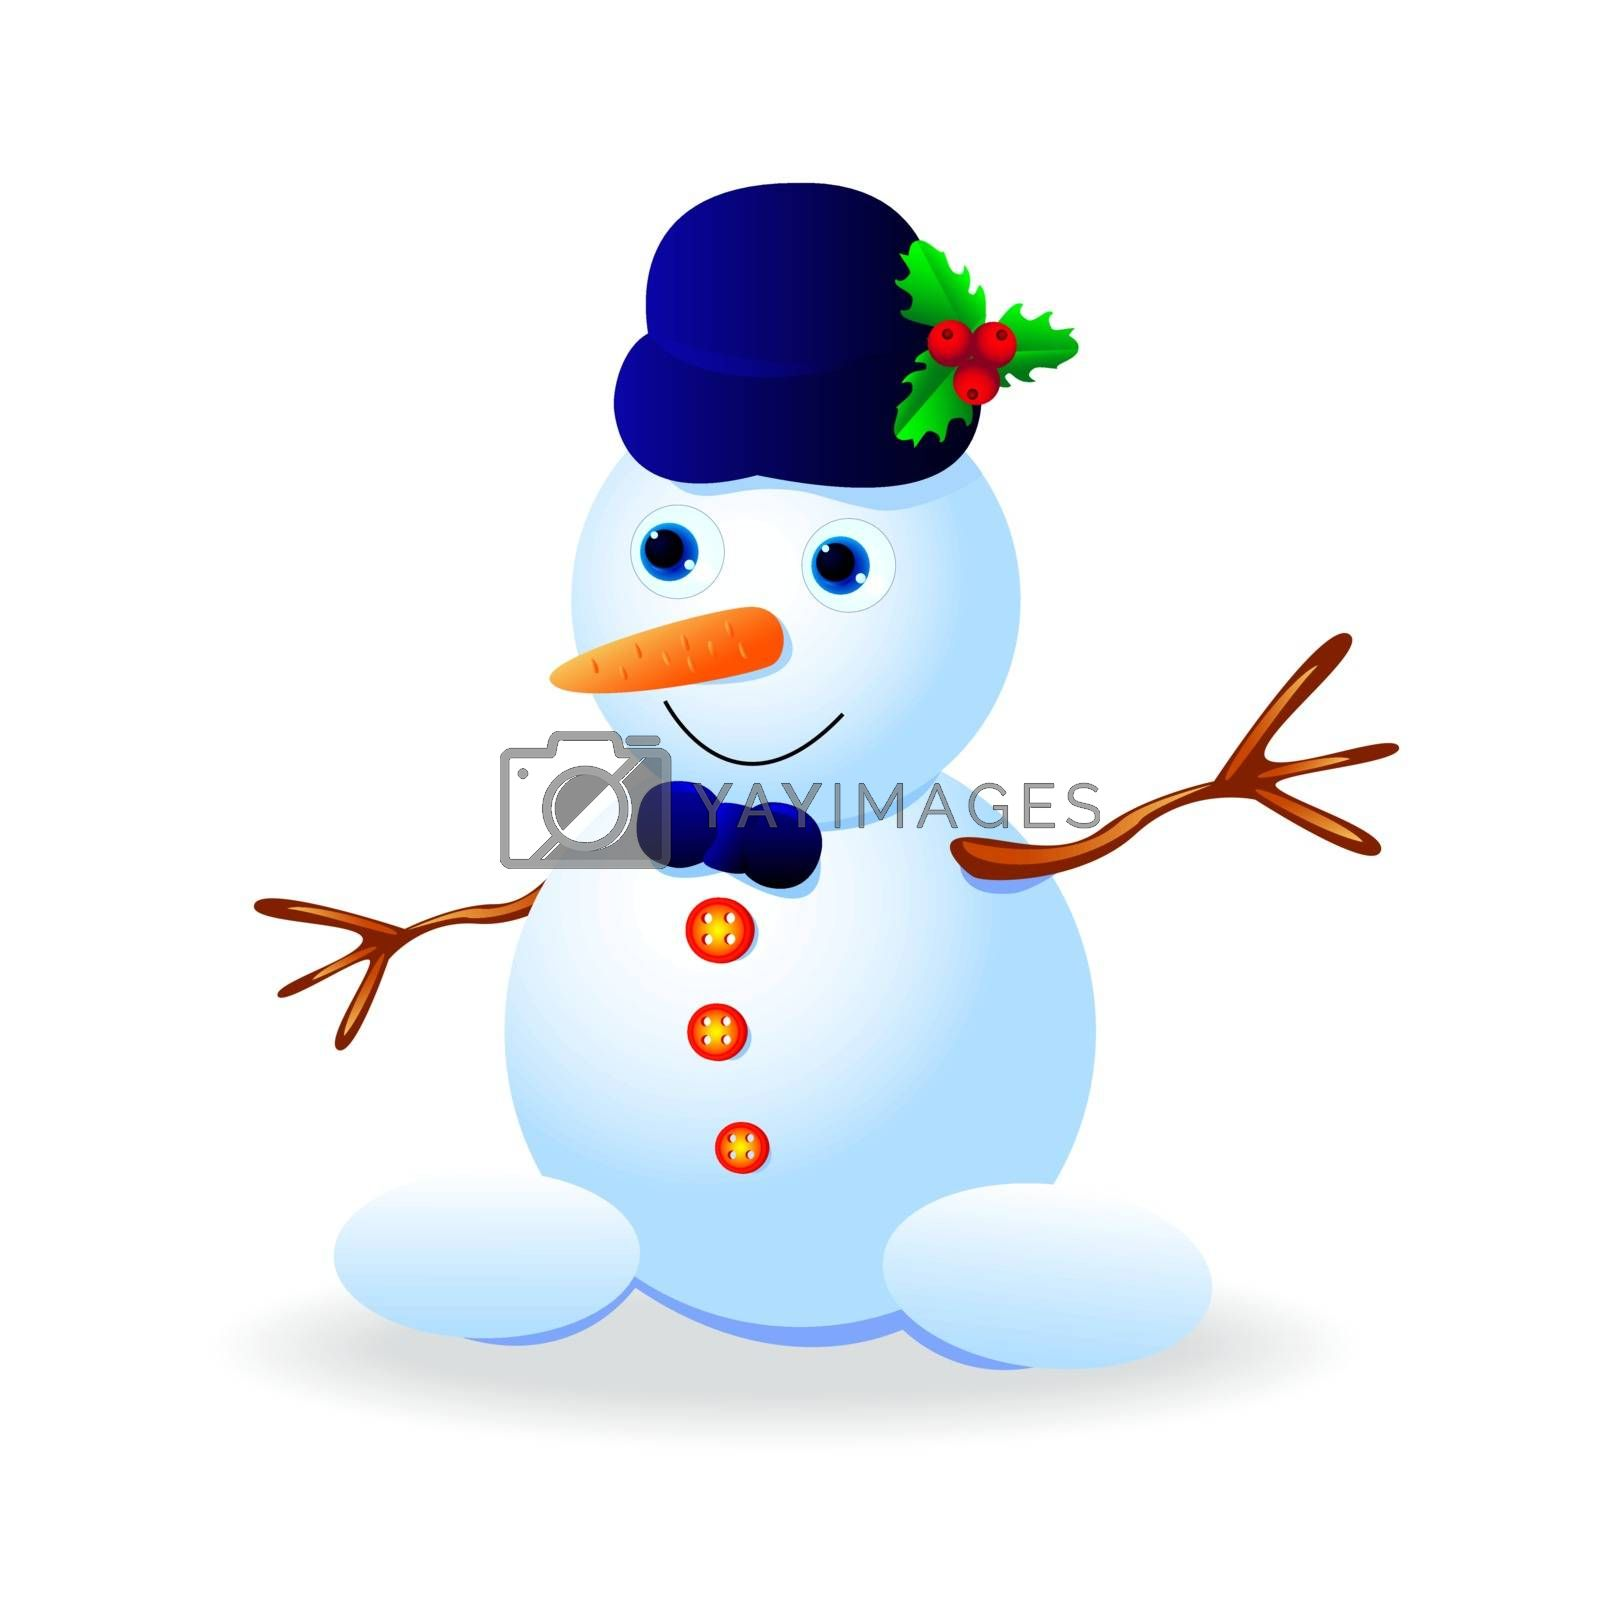 Funny snowman in a hat on a white background.